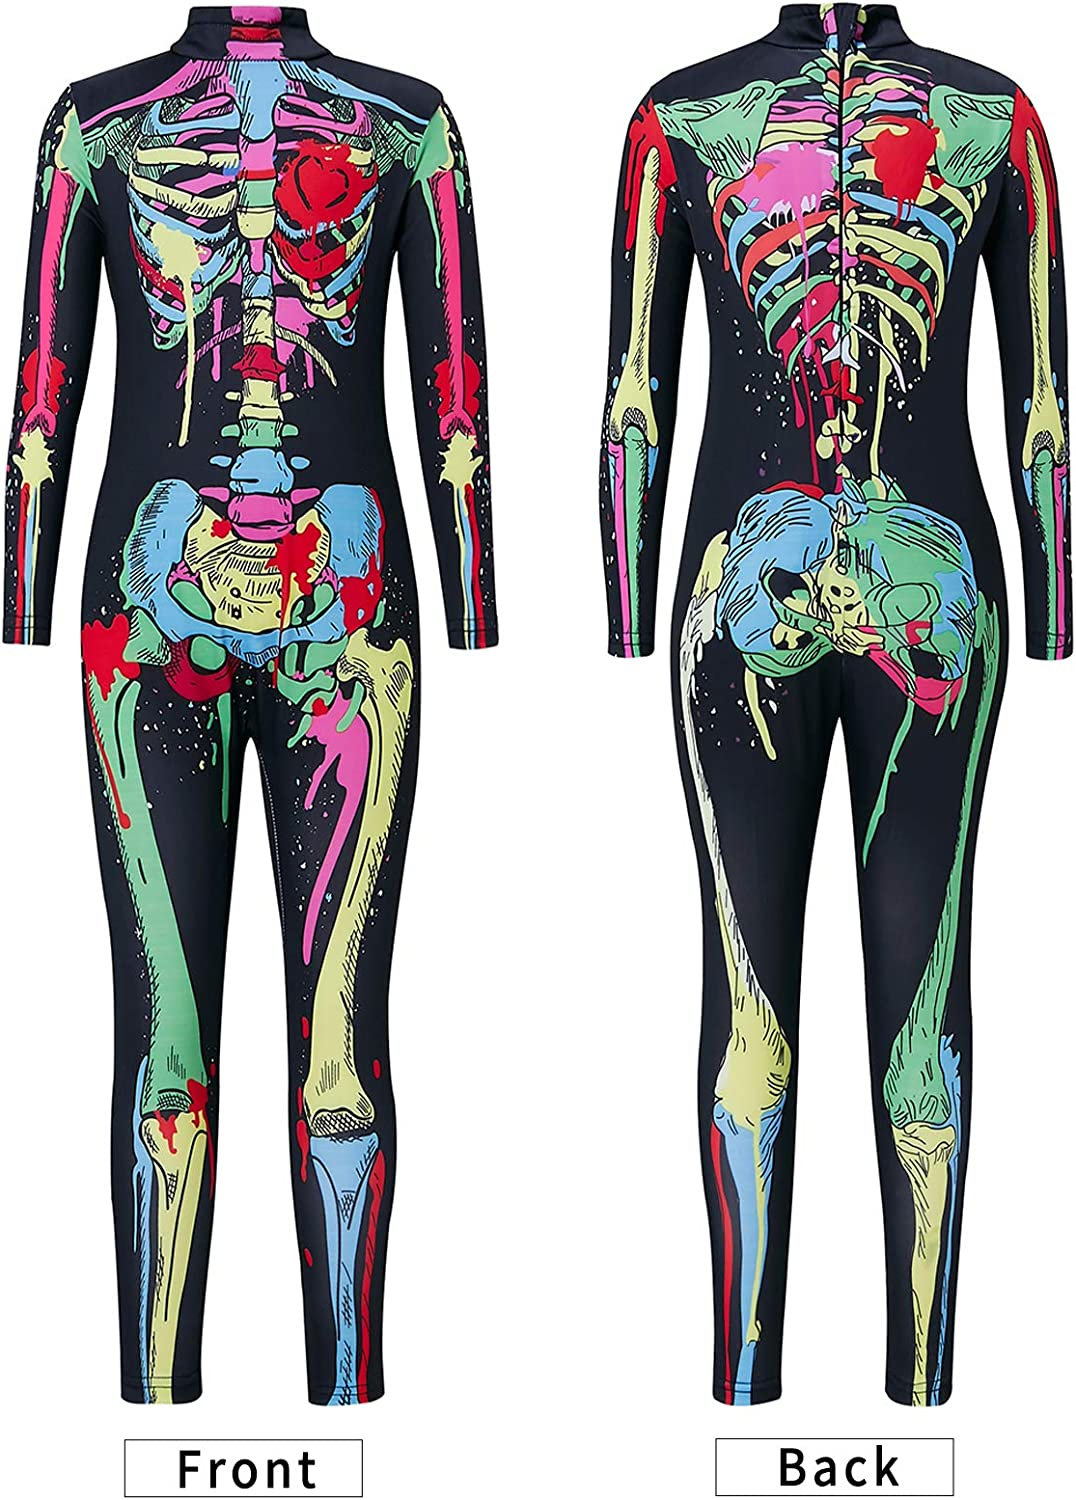 Funnycokid Halloween Costumes for Girls 3D Skeleton Zip Up Stretch Jumpsuit Catsuit 7-14 Years Old